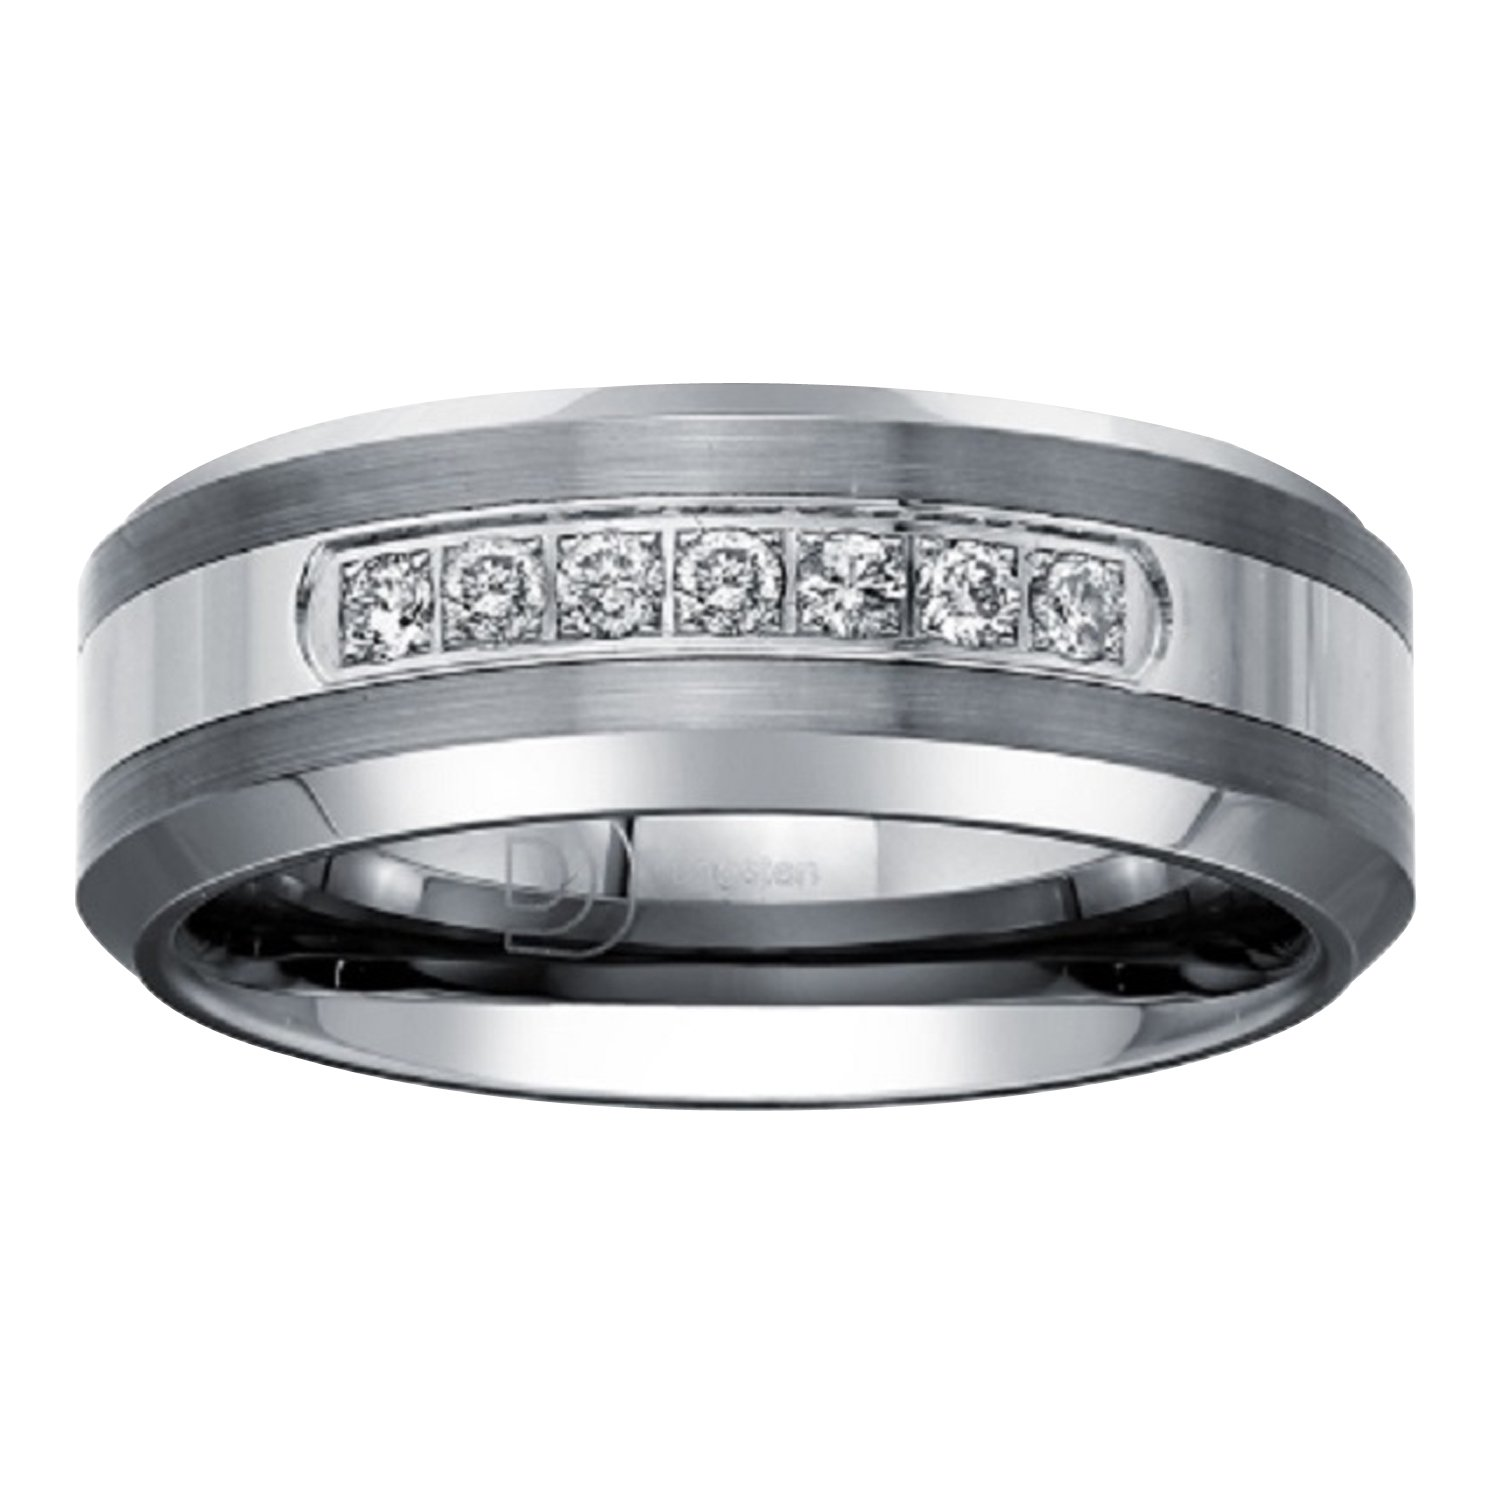 Tungsten Carbide Diamond Mens Wedding Band .20CTW (H-I I2) by AX Jewelry (Image #6)